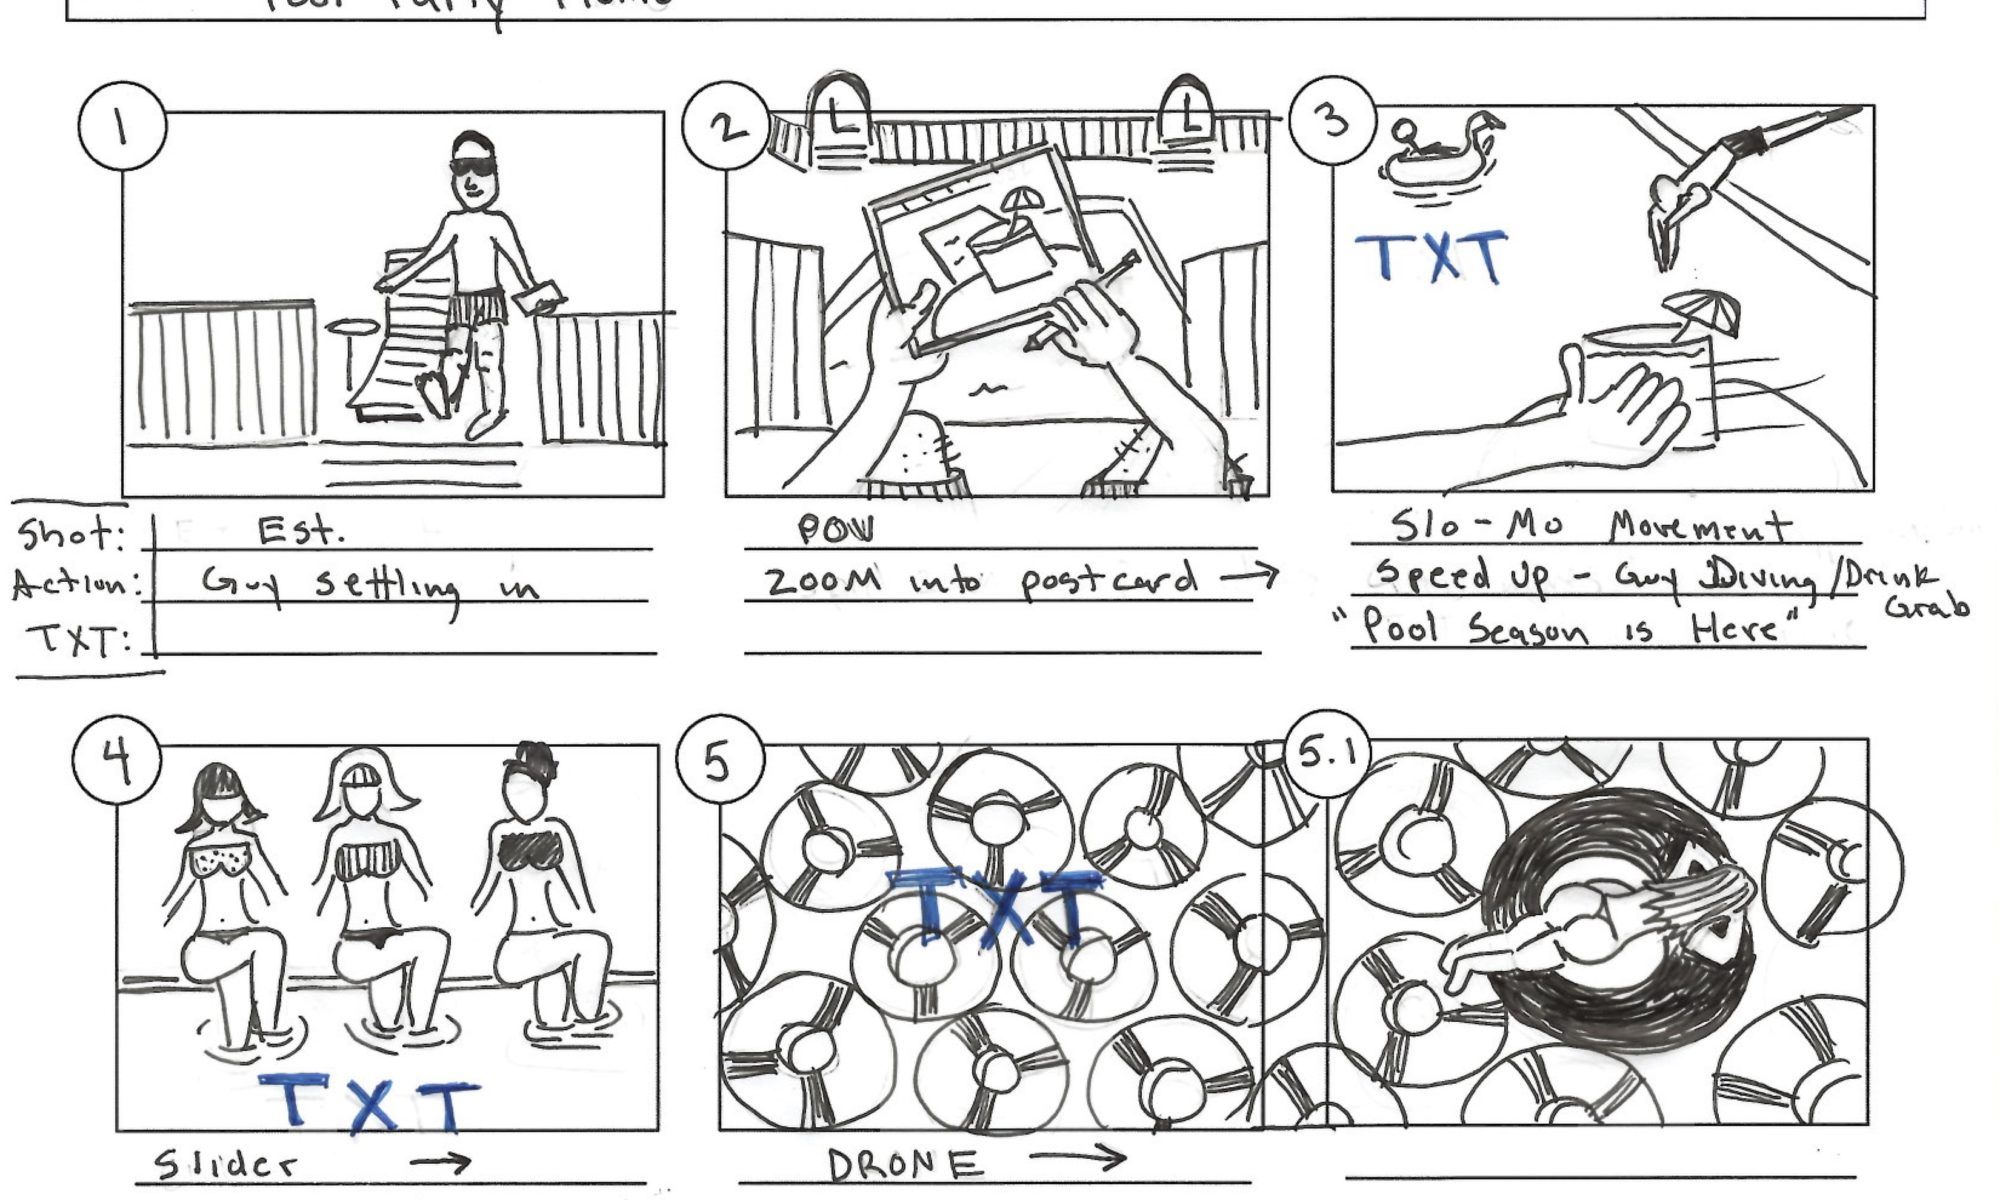 Storyboarding Keeps The Process Going